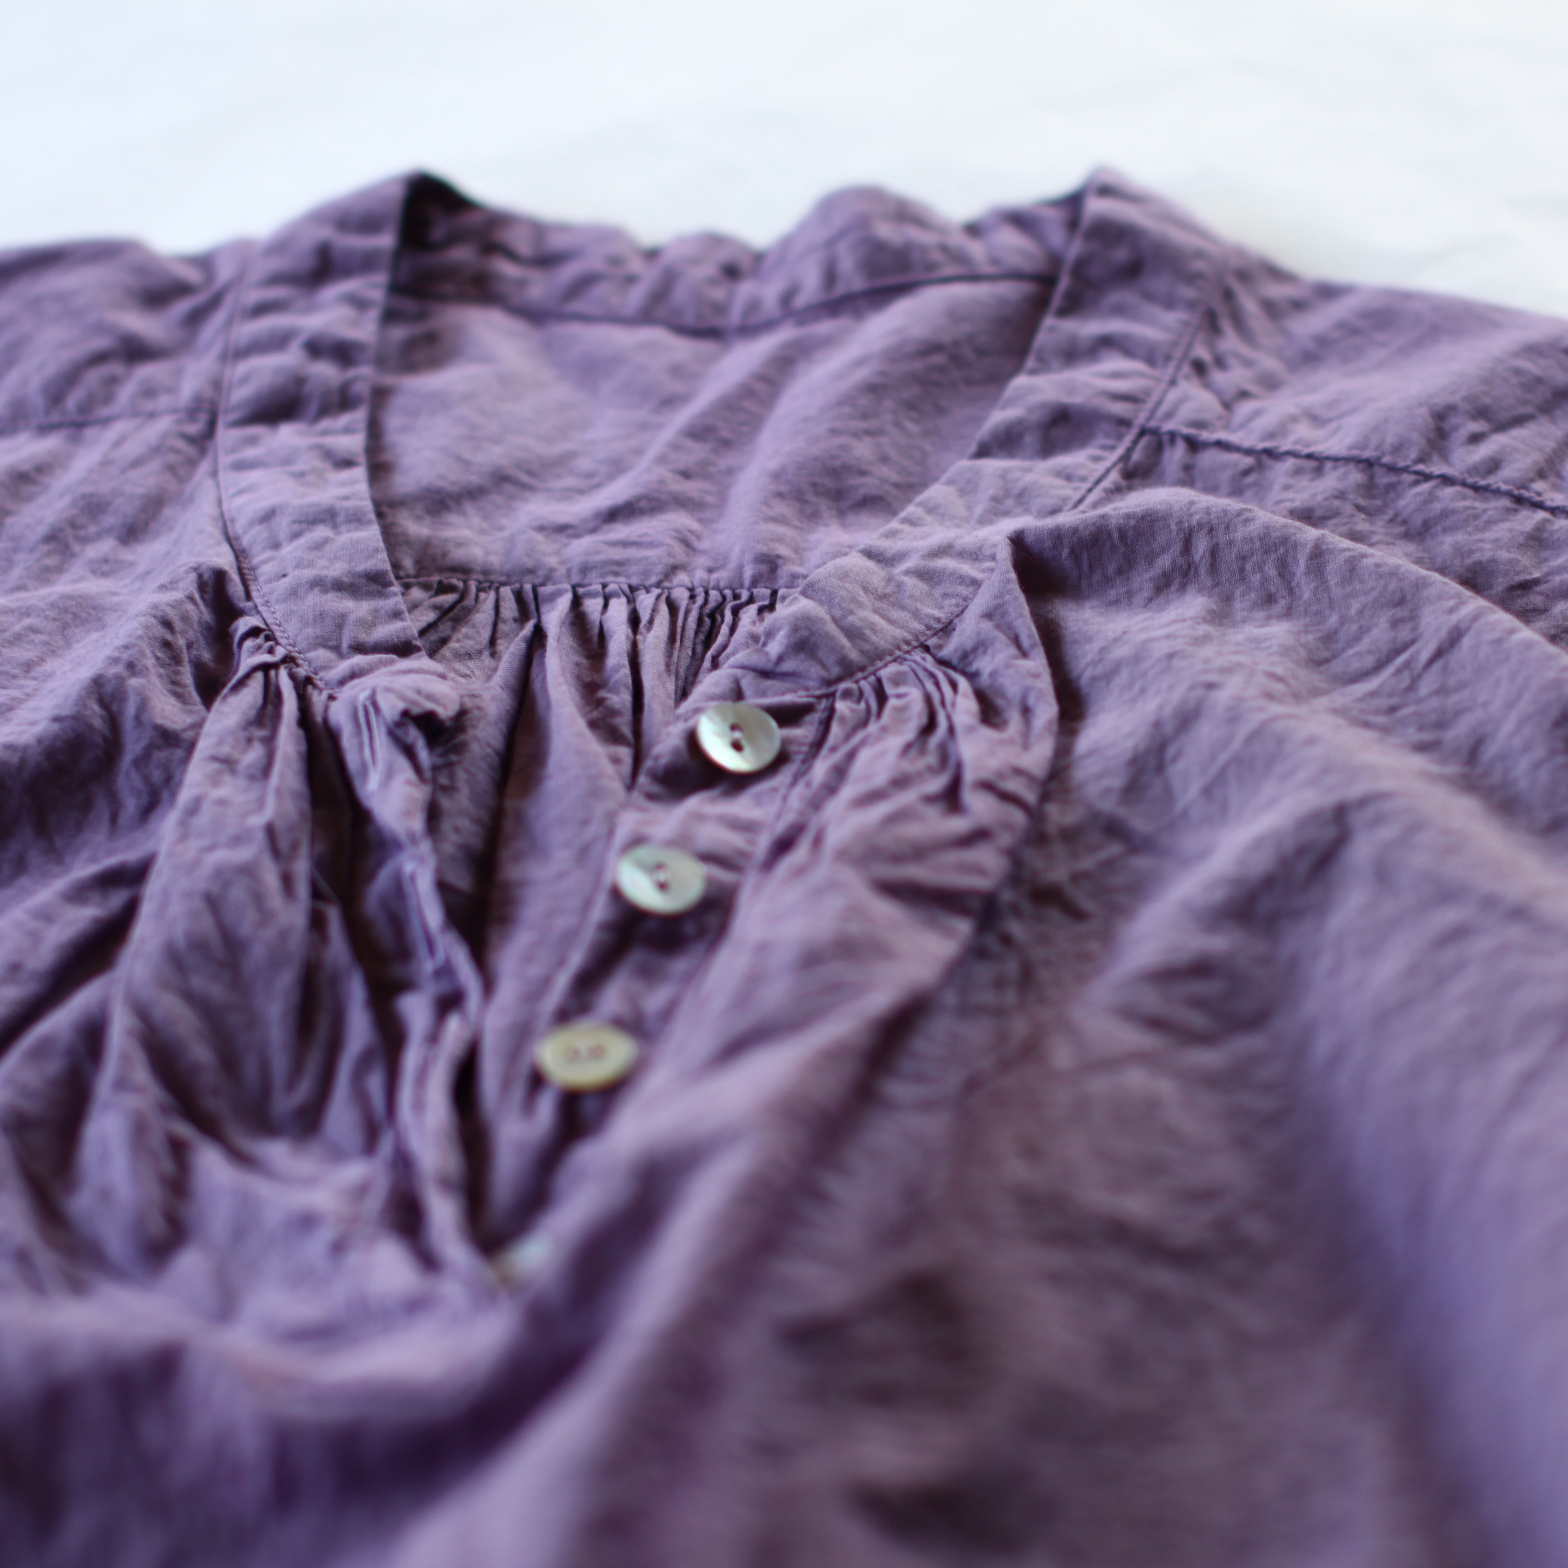 pink Organic cotton blouse オーガニックコットンのブラウス。コチニール染めでピンクに。dyed with cochineal